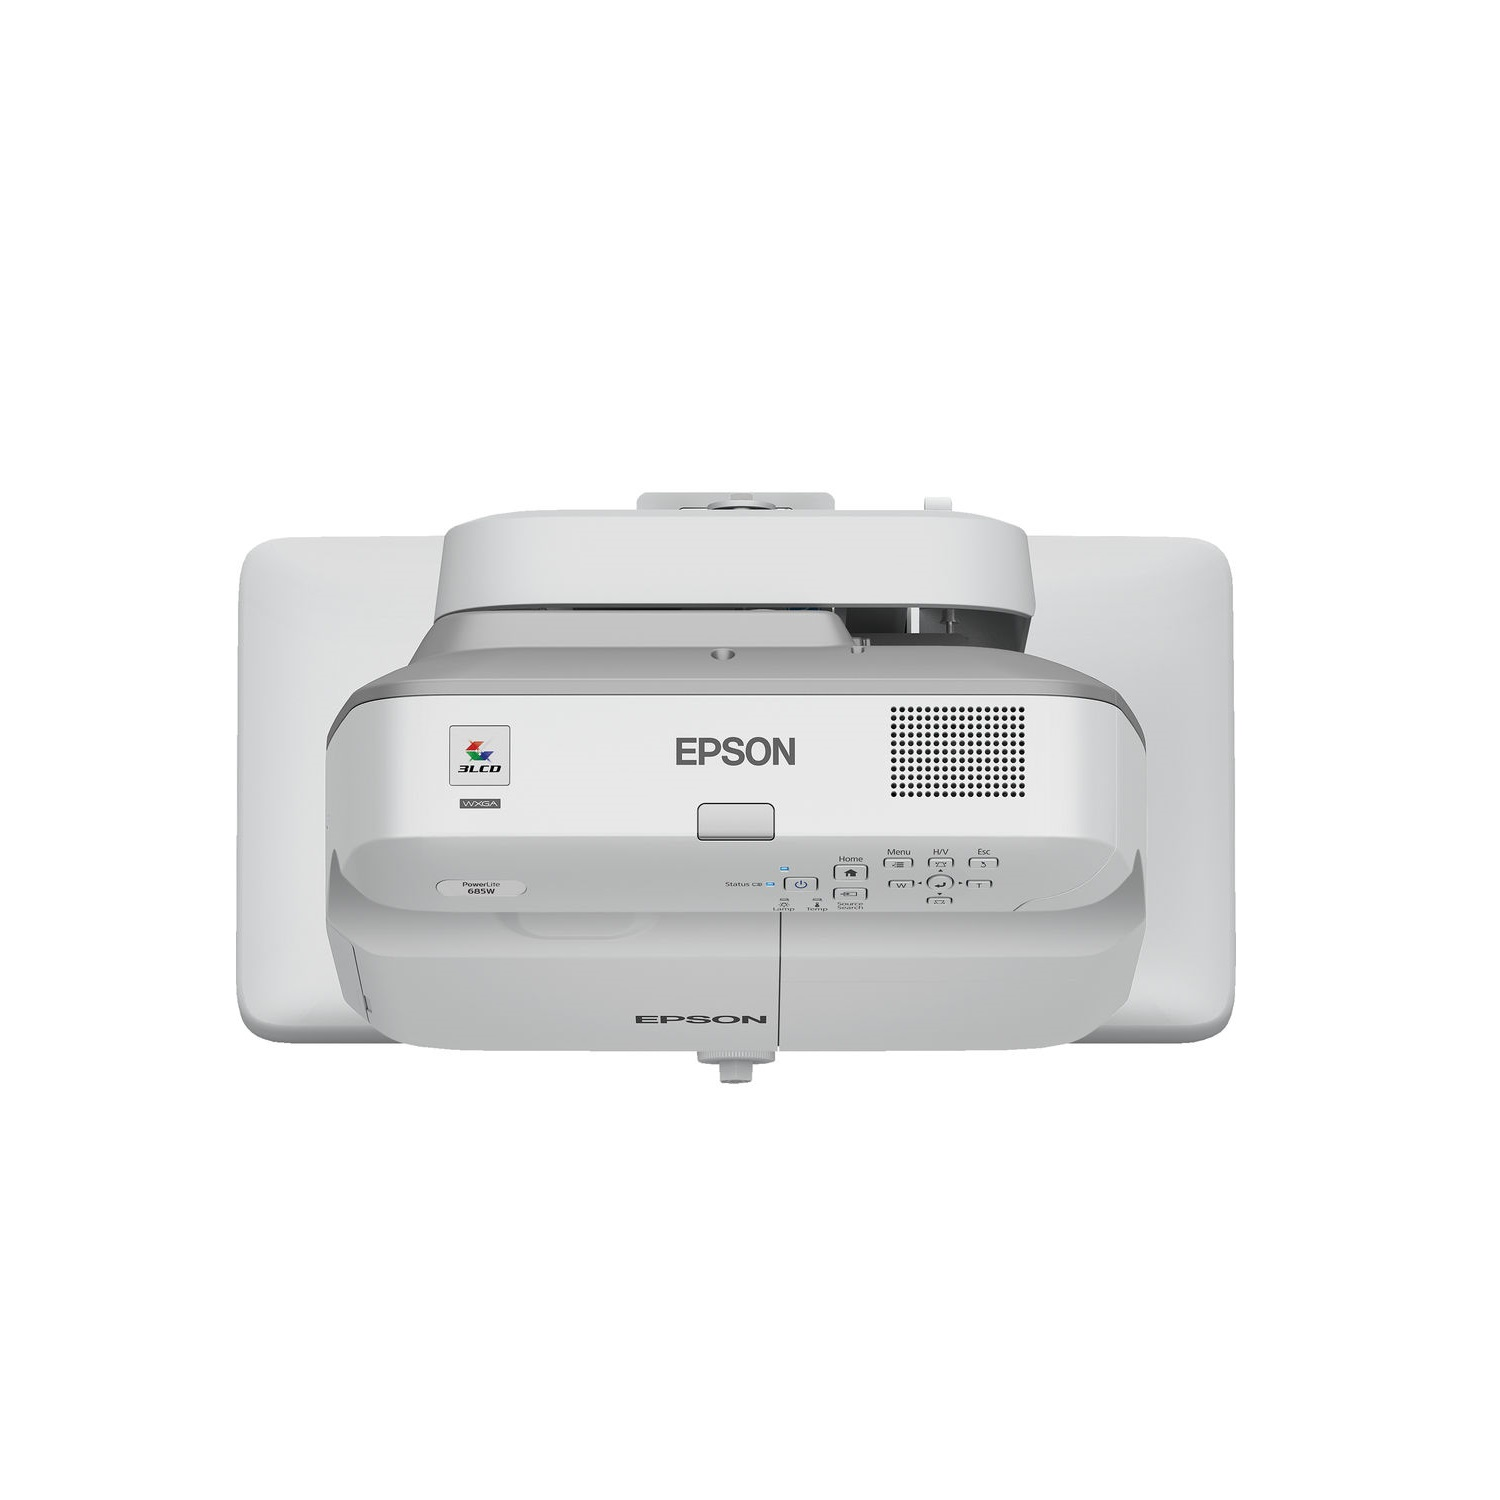 Epson PowerLite 685W 3500 Lumen Ultra-Short Throw Projector by Epson